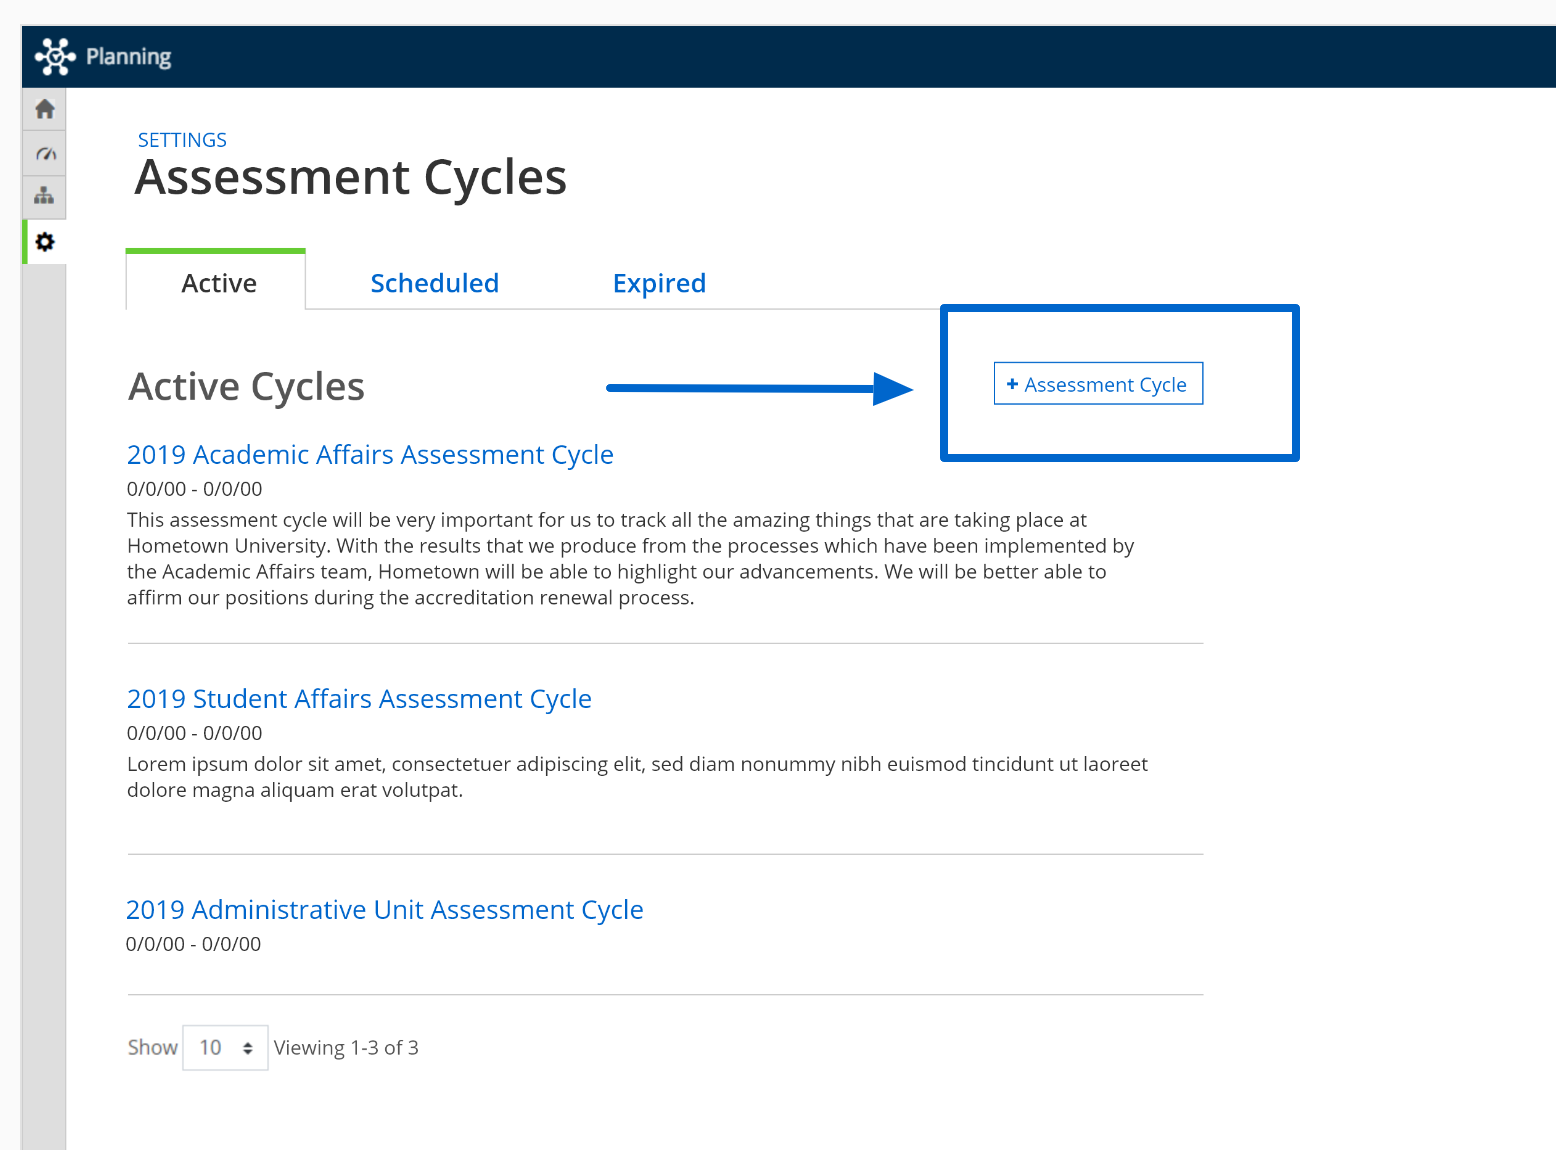 New_Assessment_Cycle.png